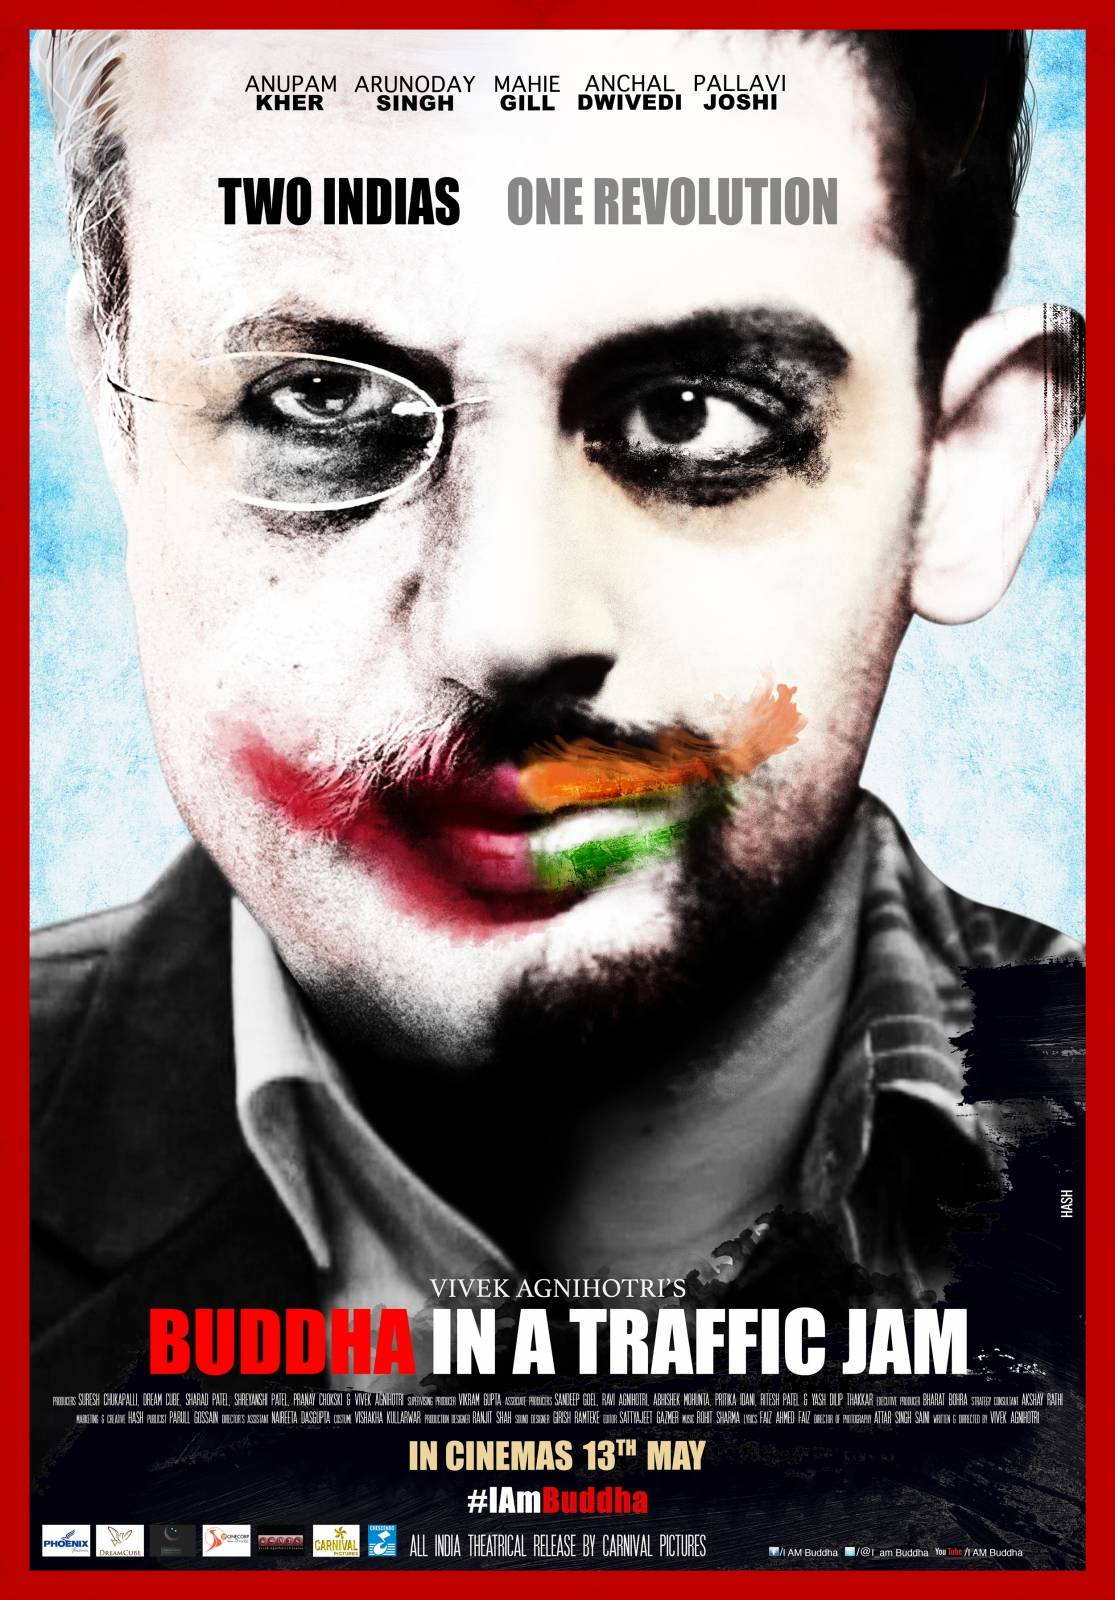 full cast and crew of bollywood movie Buddha In A Traffic Jam 2016 wiki, Mahie Gill, Anupam Kher, Arunoday Singh, Pallavi Joshi, Aanchal Dwivedi story, release date, Actress name poster, trailer, Photos, Wallapper